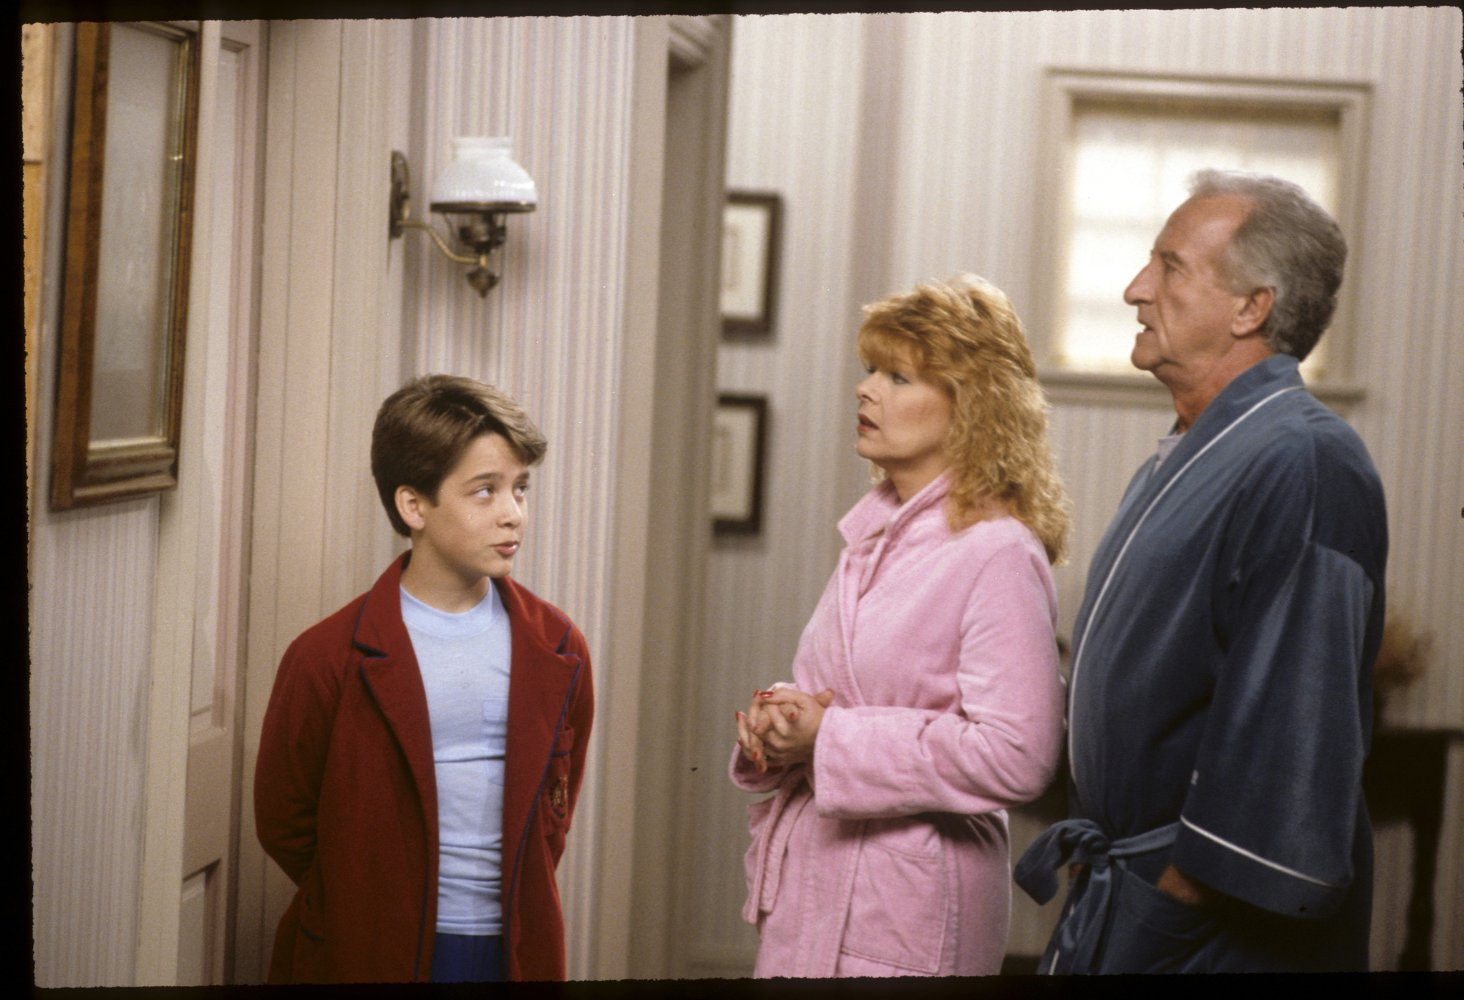 Ilene_Graff_and_Bob_Uecker_in_Mr_Belvedere_1985_